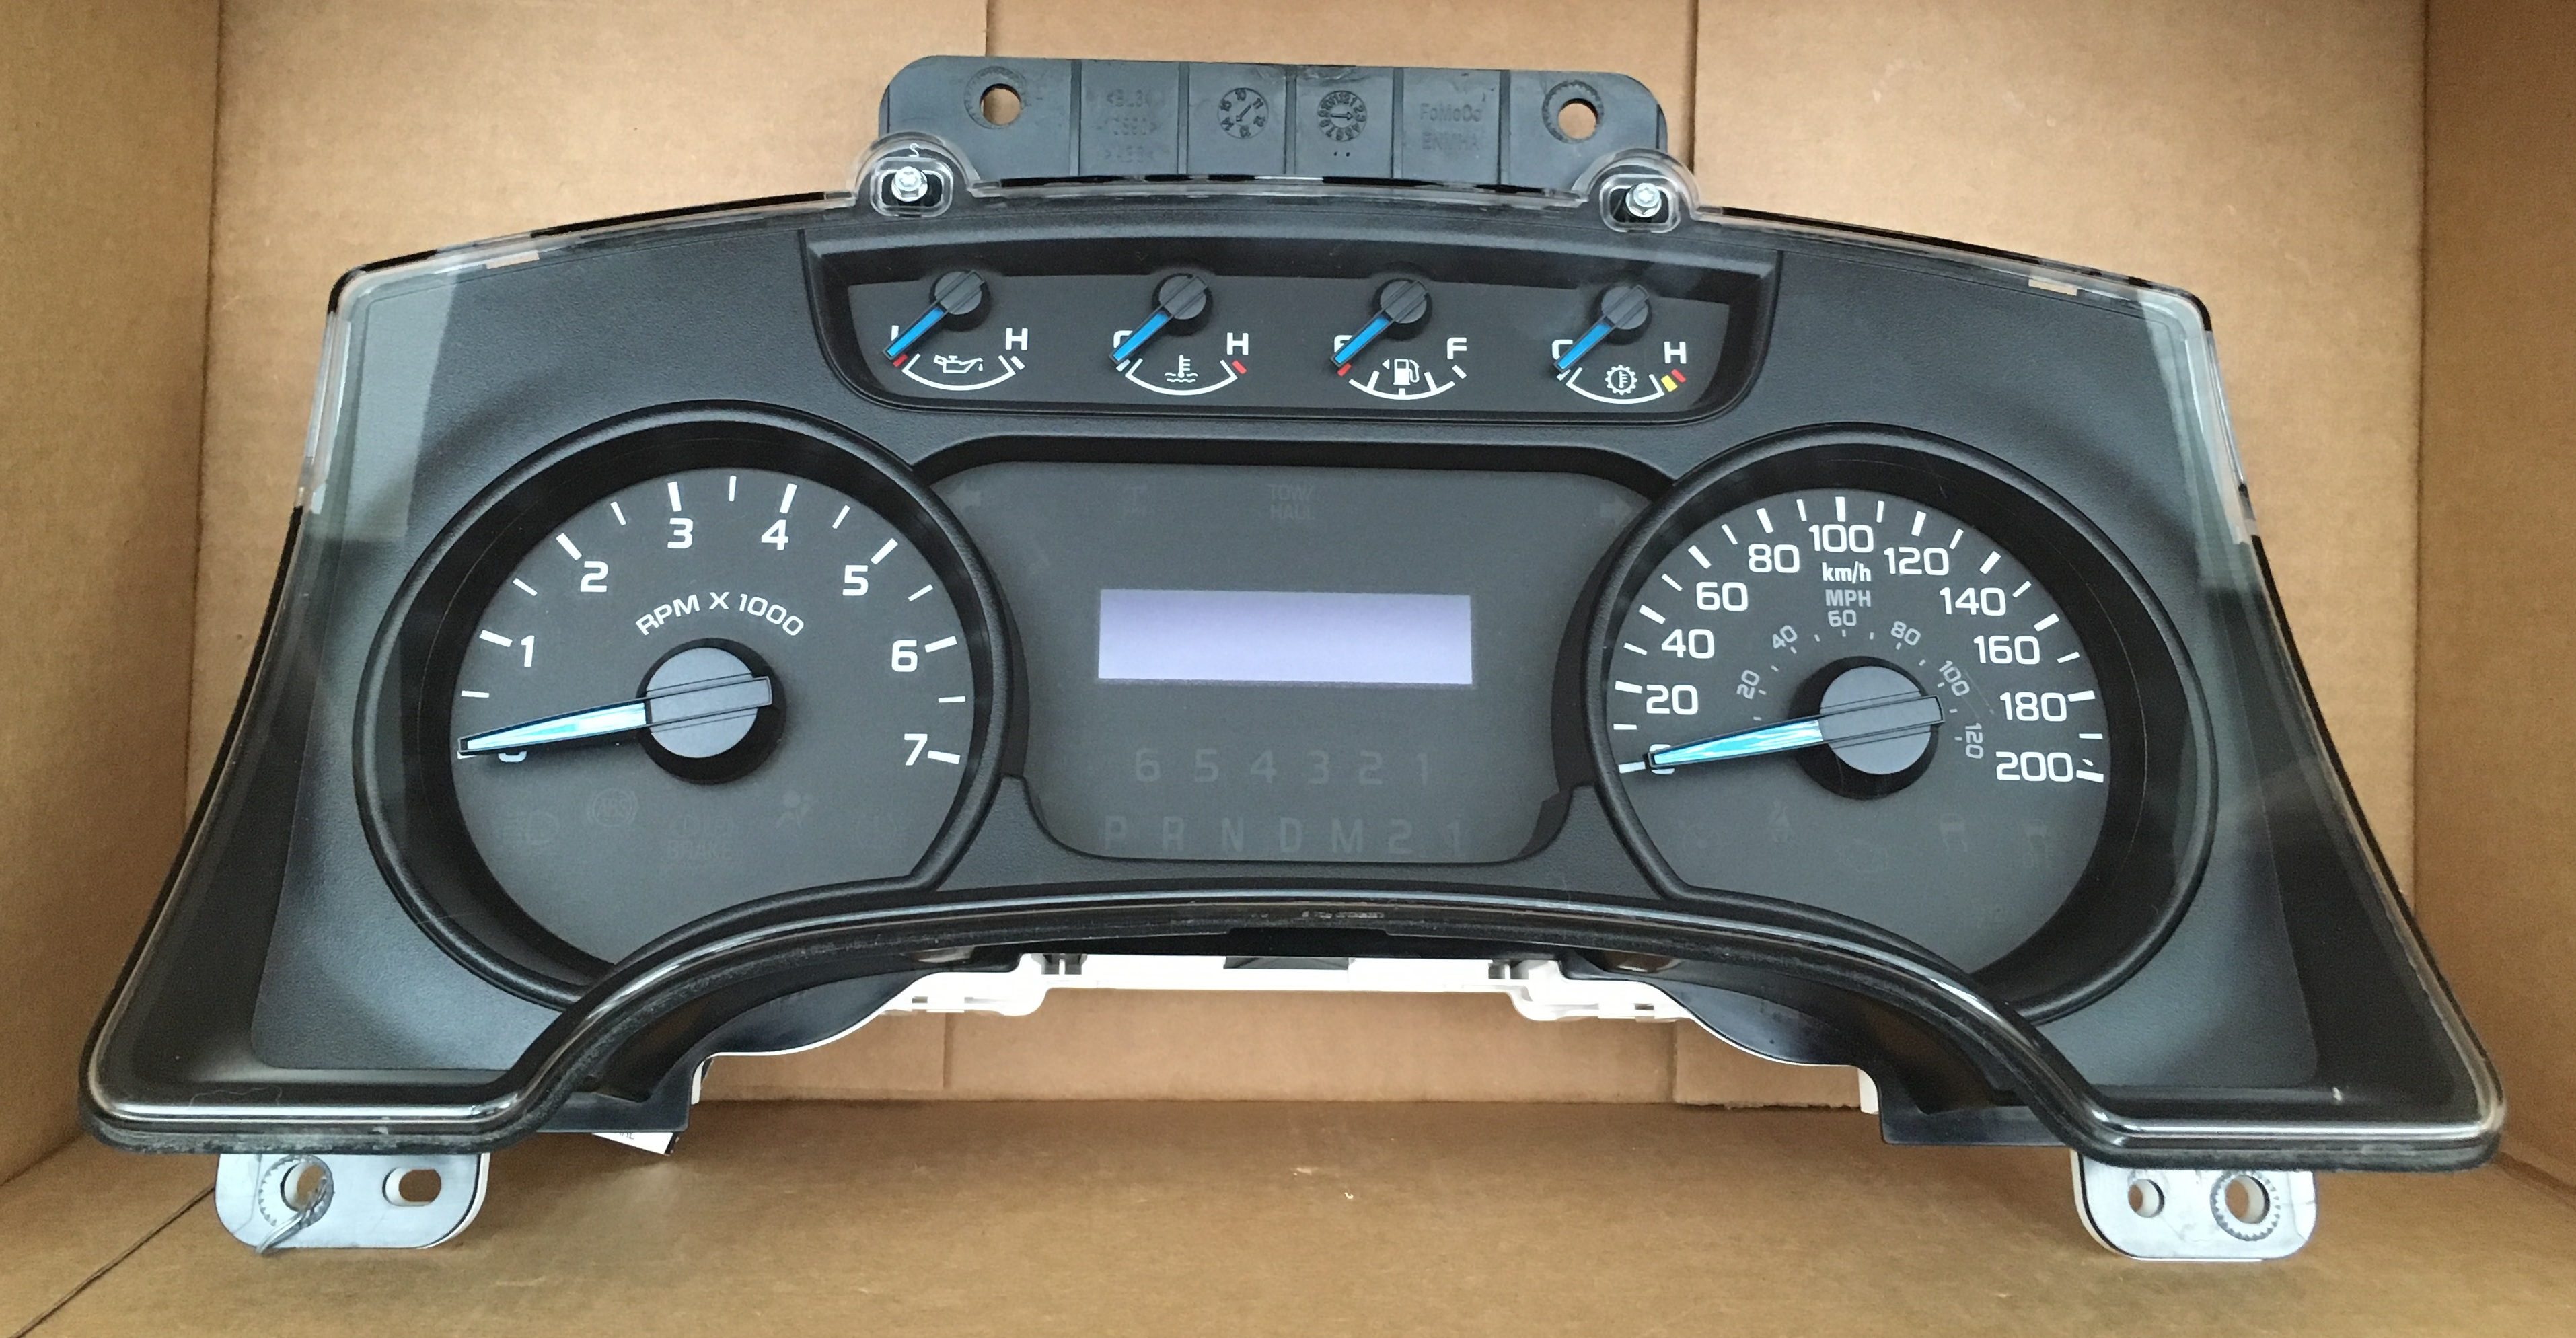 2014 FORD F150 USED DASHBOARD INSTRUMENT CLUSTER FOR SALE (KM/H)